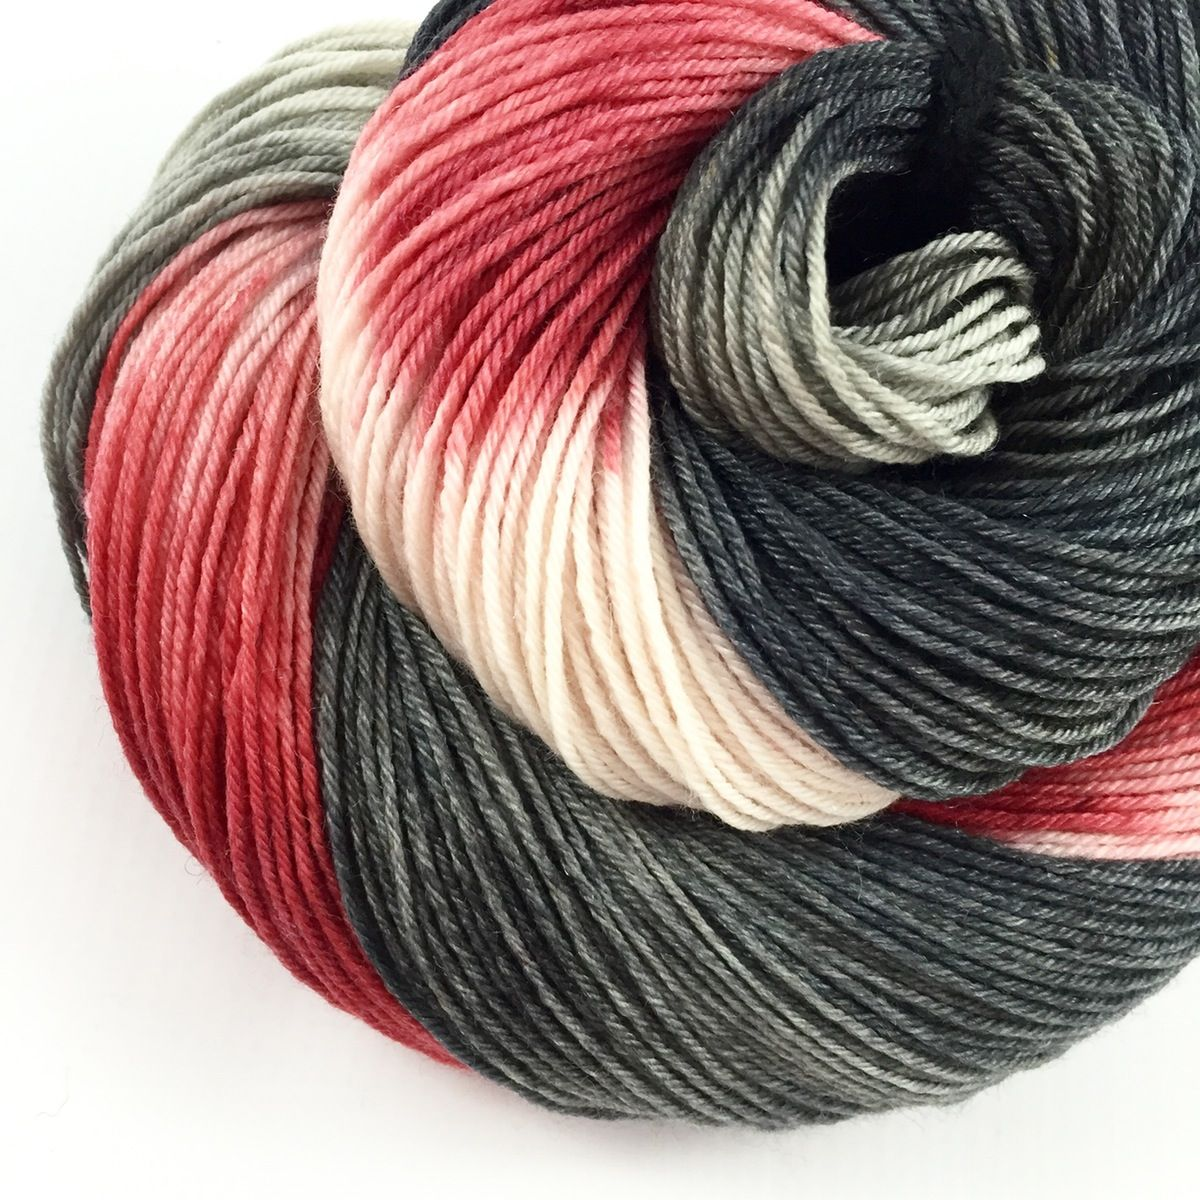 3 available ~ Inspired by the book The Night Circus, by Erin Morgenstern. If you have read the book, you'll understand this colorway. :-) Each ...